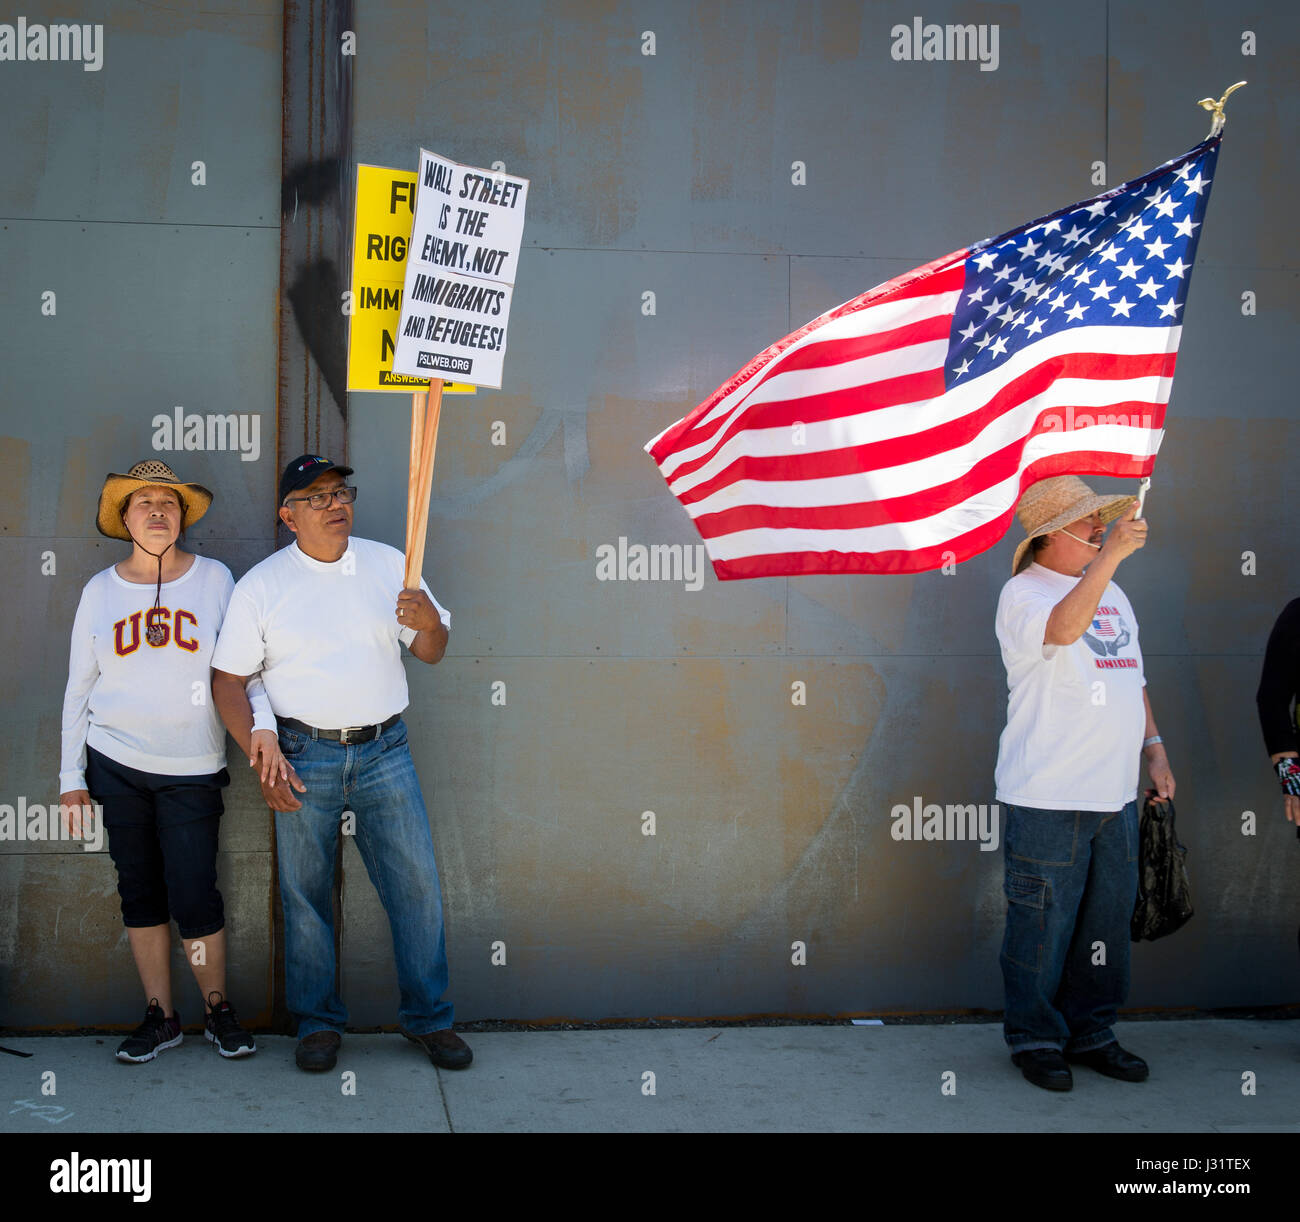 Los Angeles, USA. 1st May, 2017. Protesters at May Day rally in Downtown Los Angeles, California, May 1st, 2017. Stock Photo